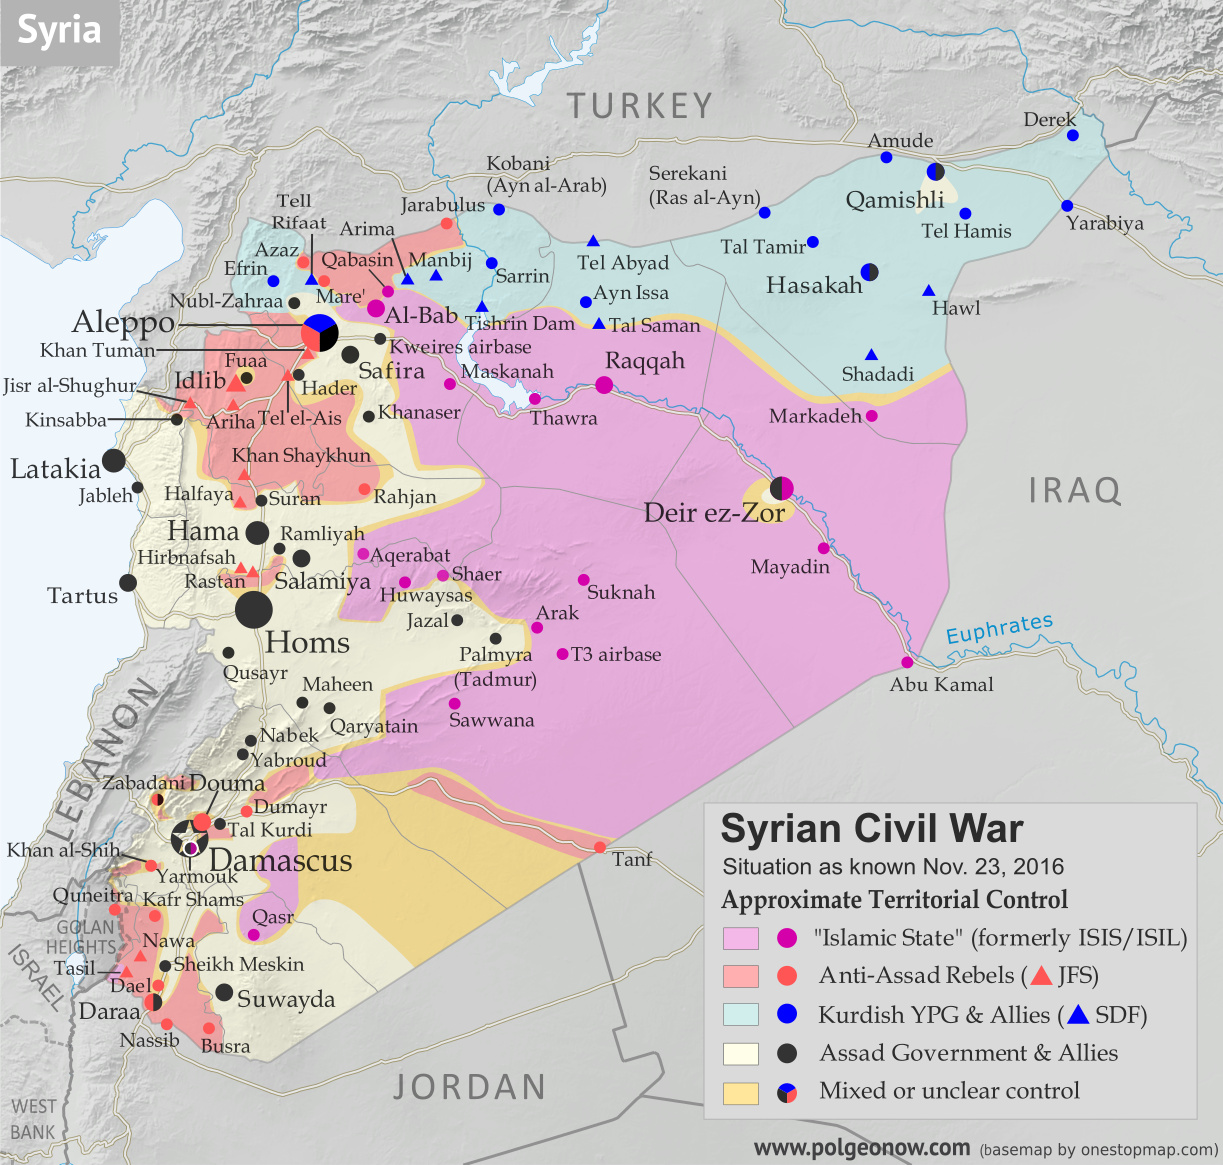 Map of fighting and territorial control in Syria's Civil War (Free Syrian Army rebels, Kurdish YPG, Syrian Democratic Forces (SDF), Jabhat Fateh al-Sham (Al-Nusra Front), Islamic State (ISIS/ISIL), and others), updated to November 23, 2016. Now includes terrain and major roads (highways). Includes recent locations of conflict and territorial control changes, such as Al-Bab, Khan al-Shih, Tal Saman, Qabasin, and more. Colorblind accessible.